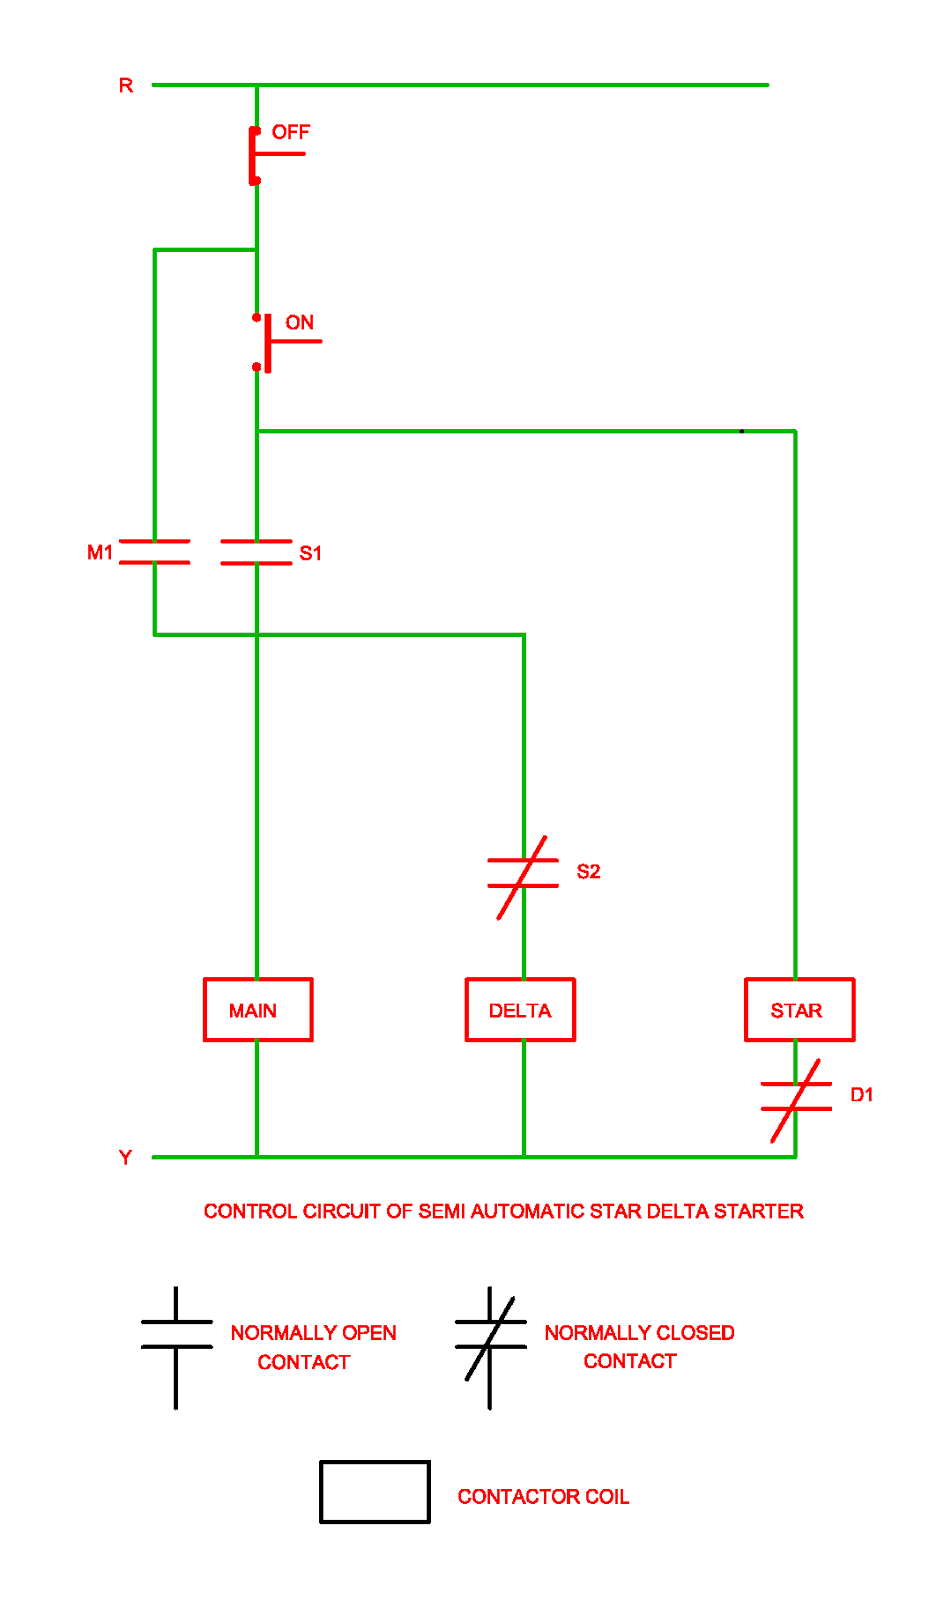 medium resolution of control circuit of semi automatic star delta starter pdf